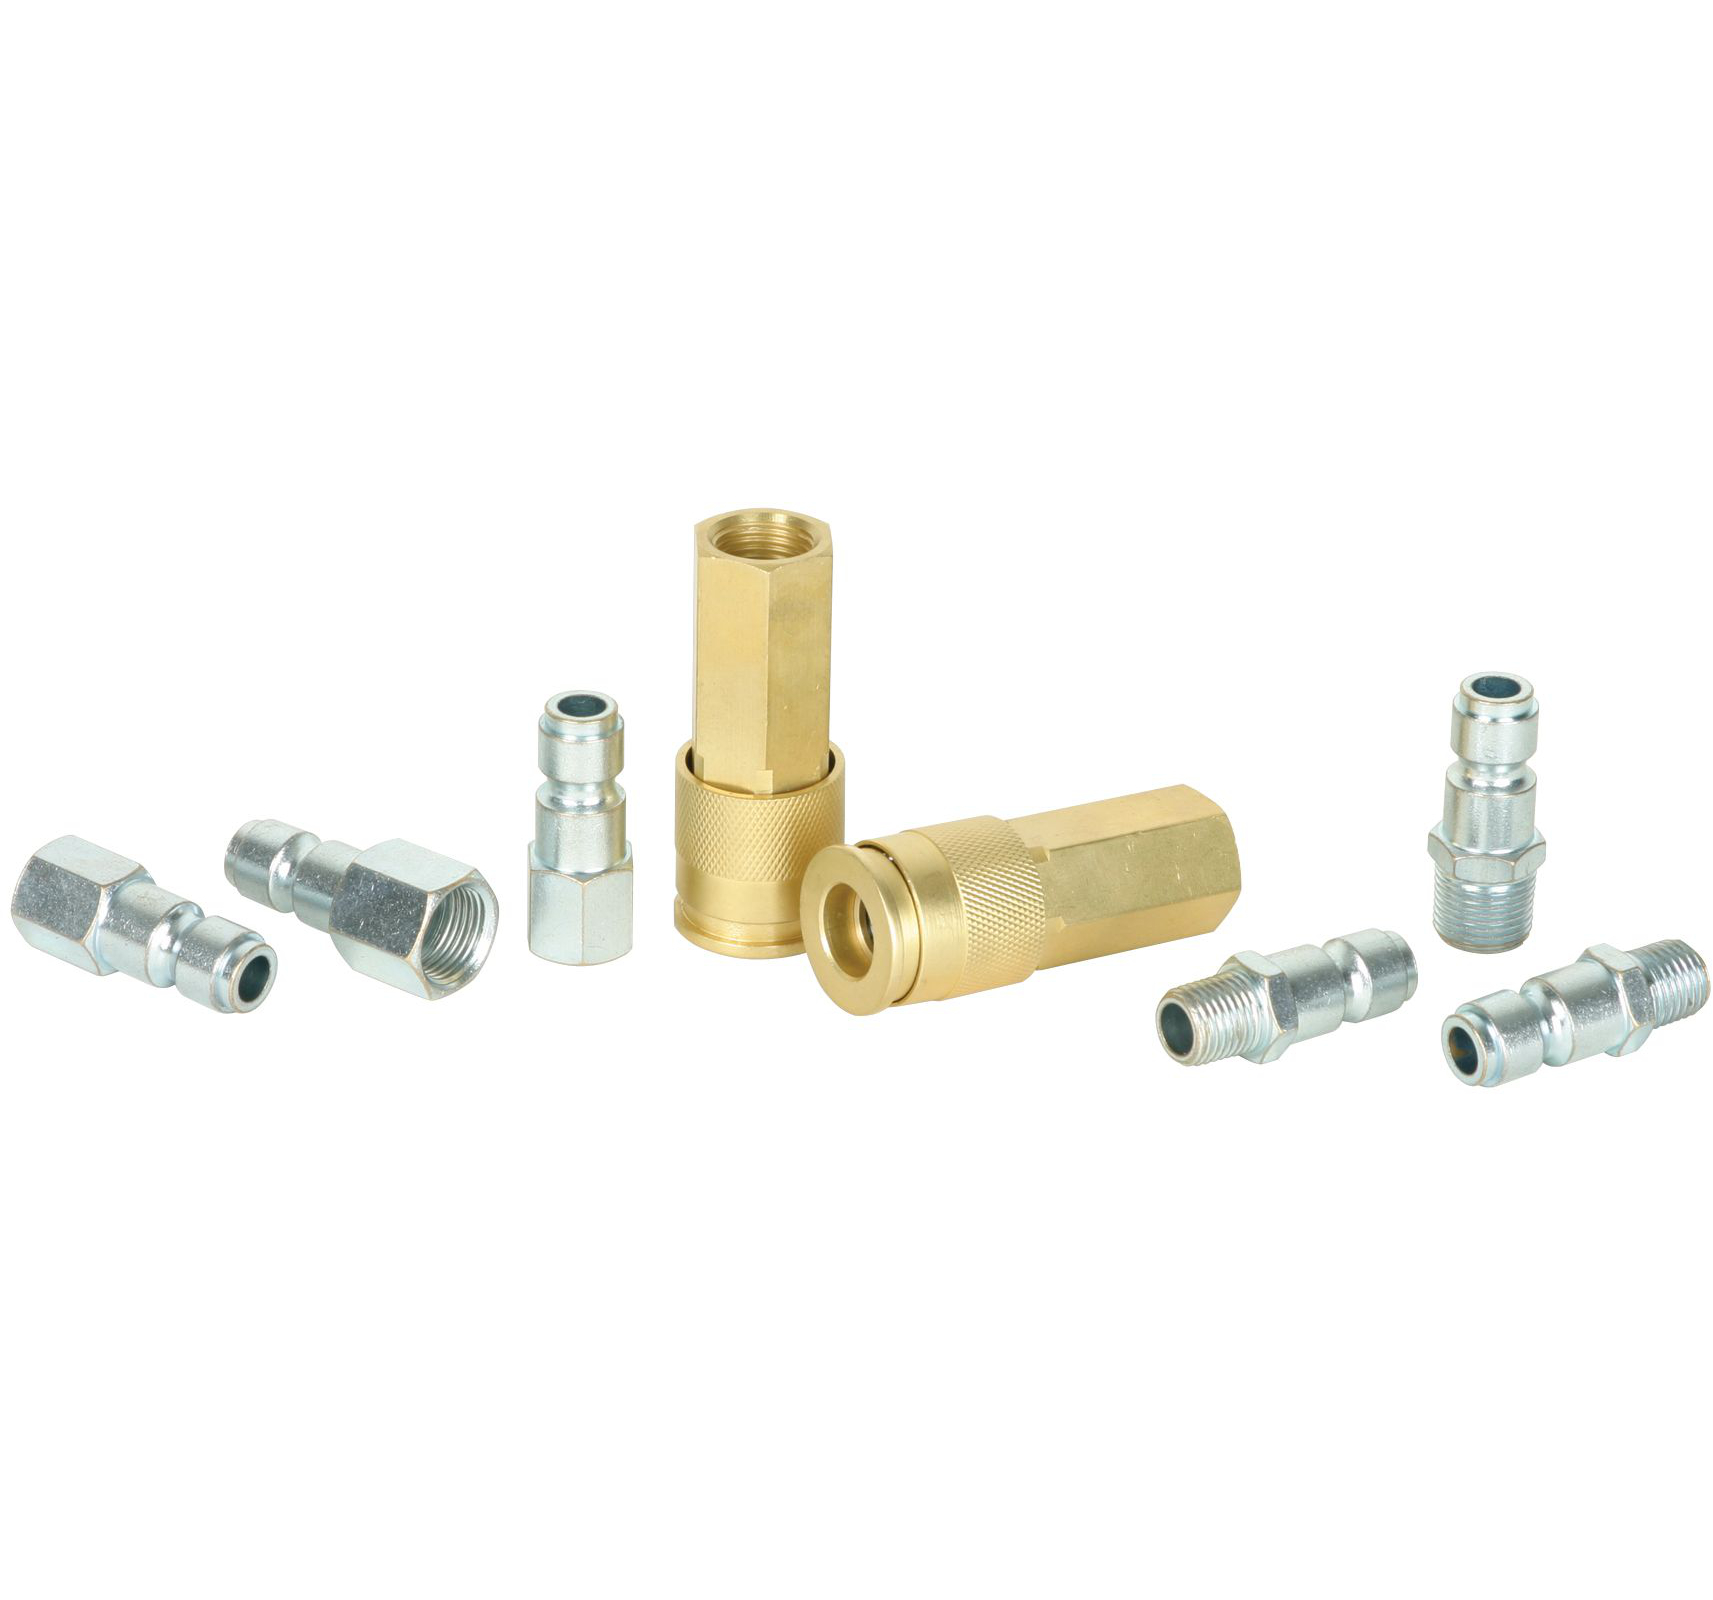 Craftsman 8 pc  3/8 quick connect coupler kit